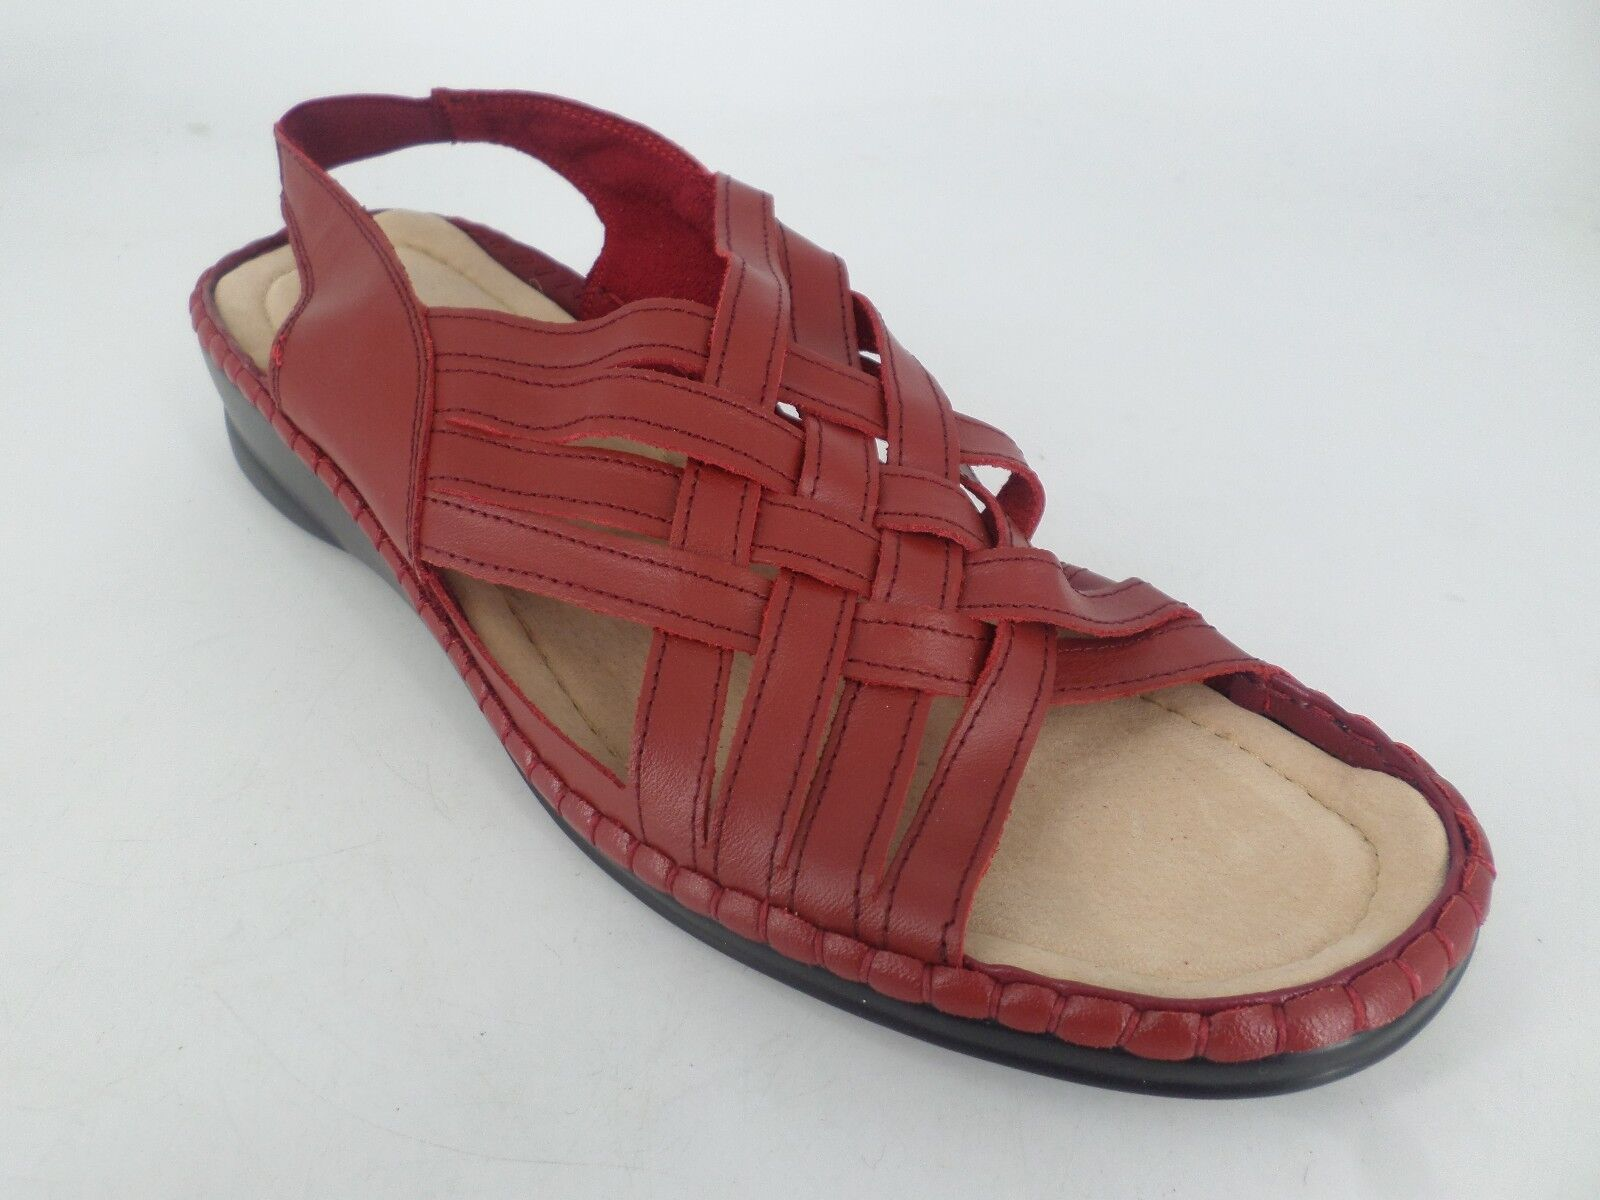 Ladies Leather Woven Slingback Sandals Red UK 6 EU 39 LN084 EE 03